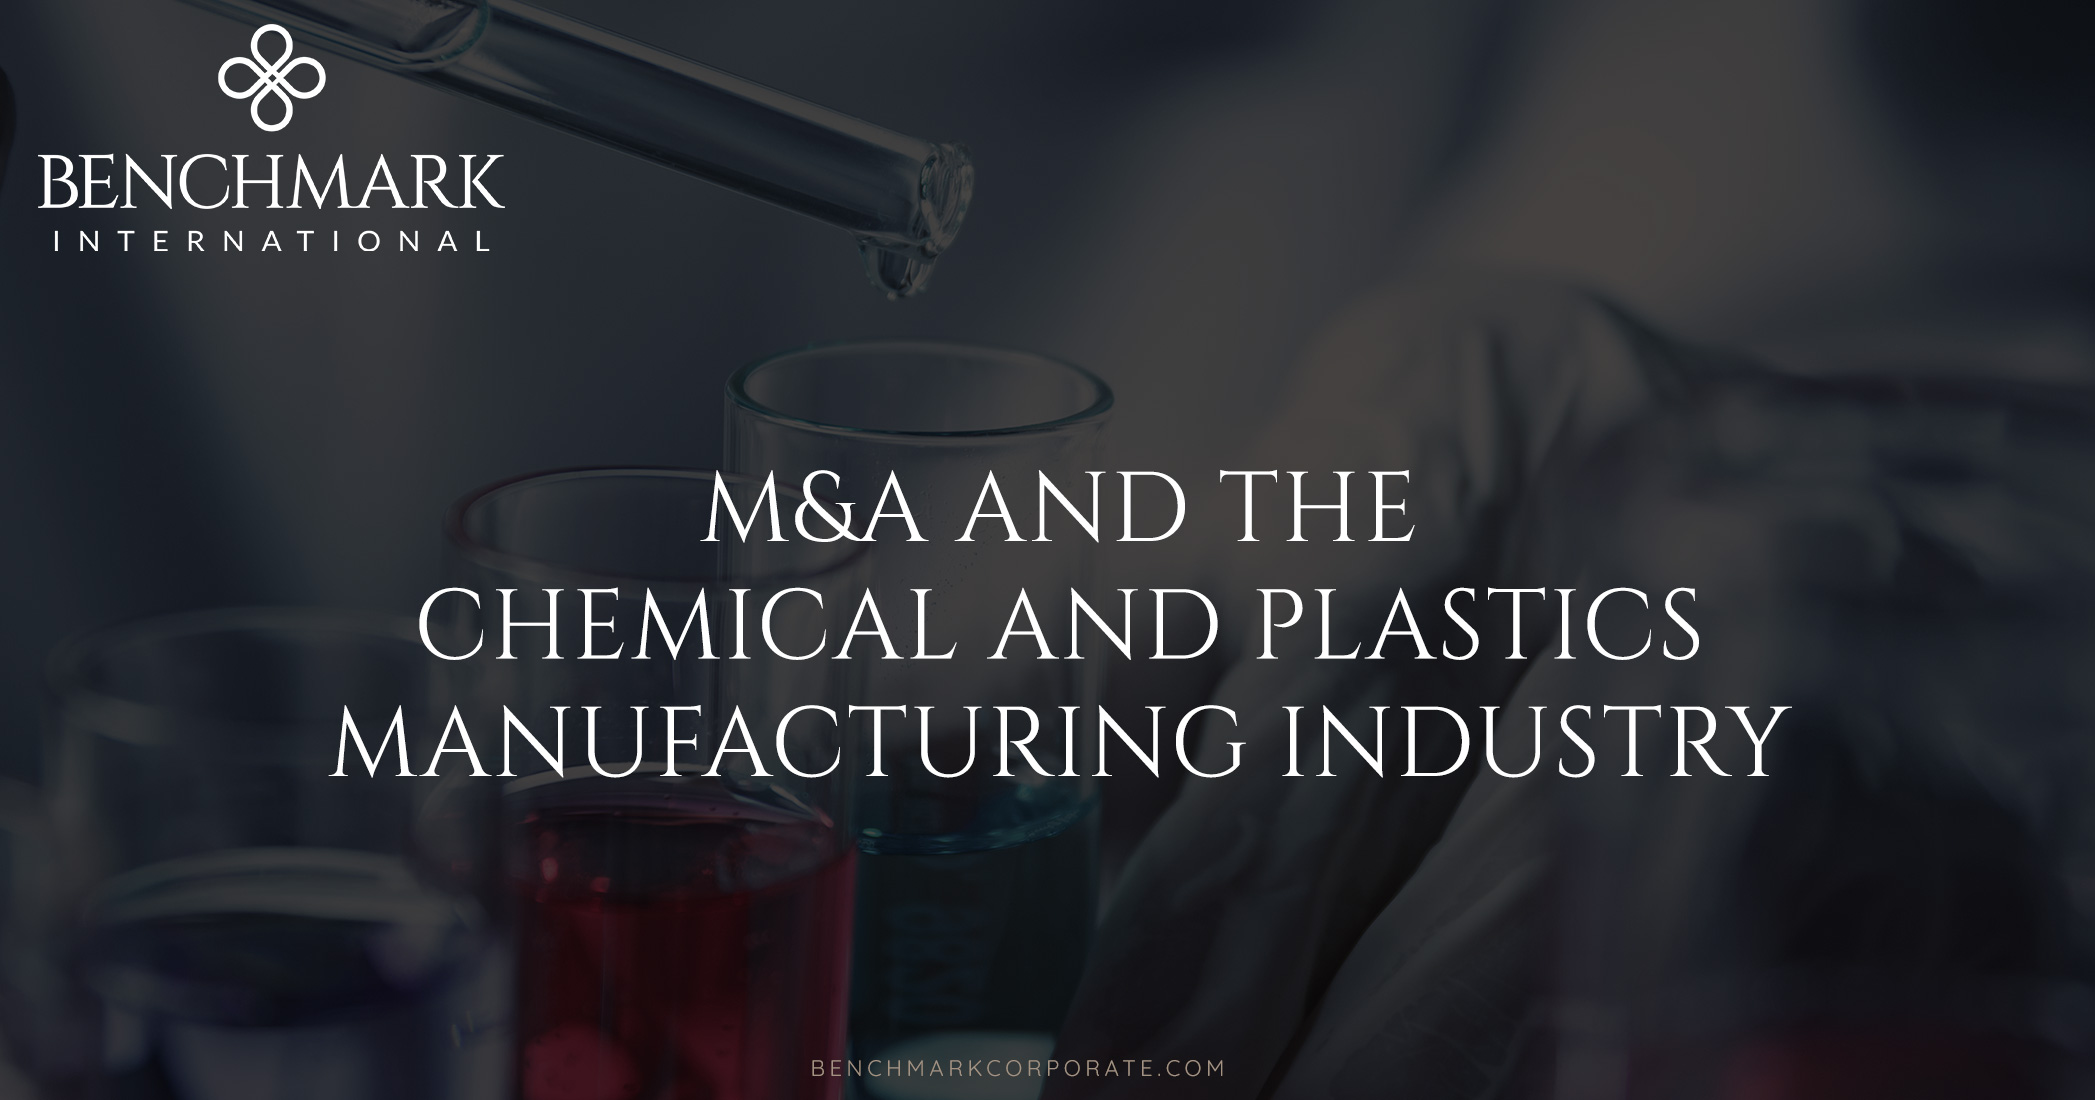 M&A And The Chemical And Plastics Manufacturing Industry